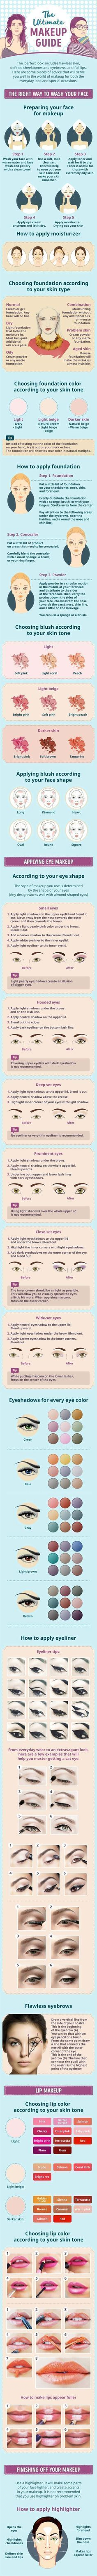 Best Makeup Tutorials for Teens The Ultimate Makeup Guide You Cant Live Without